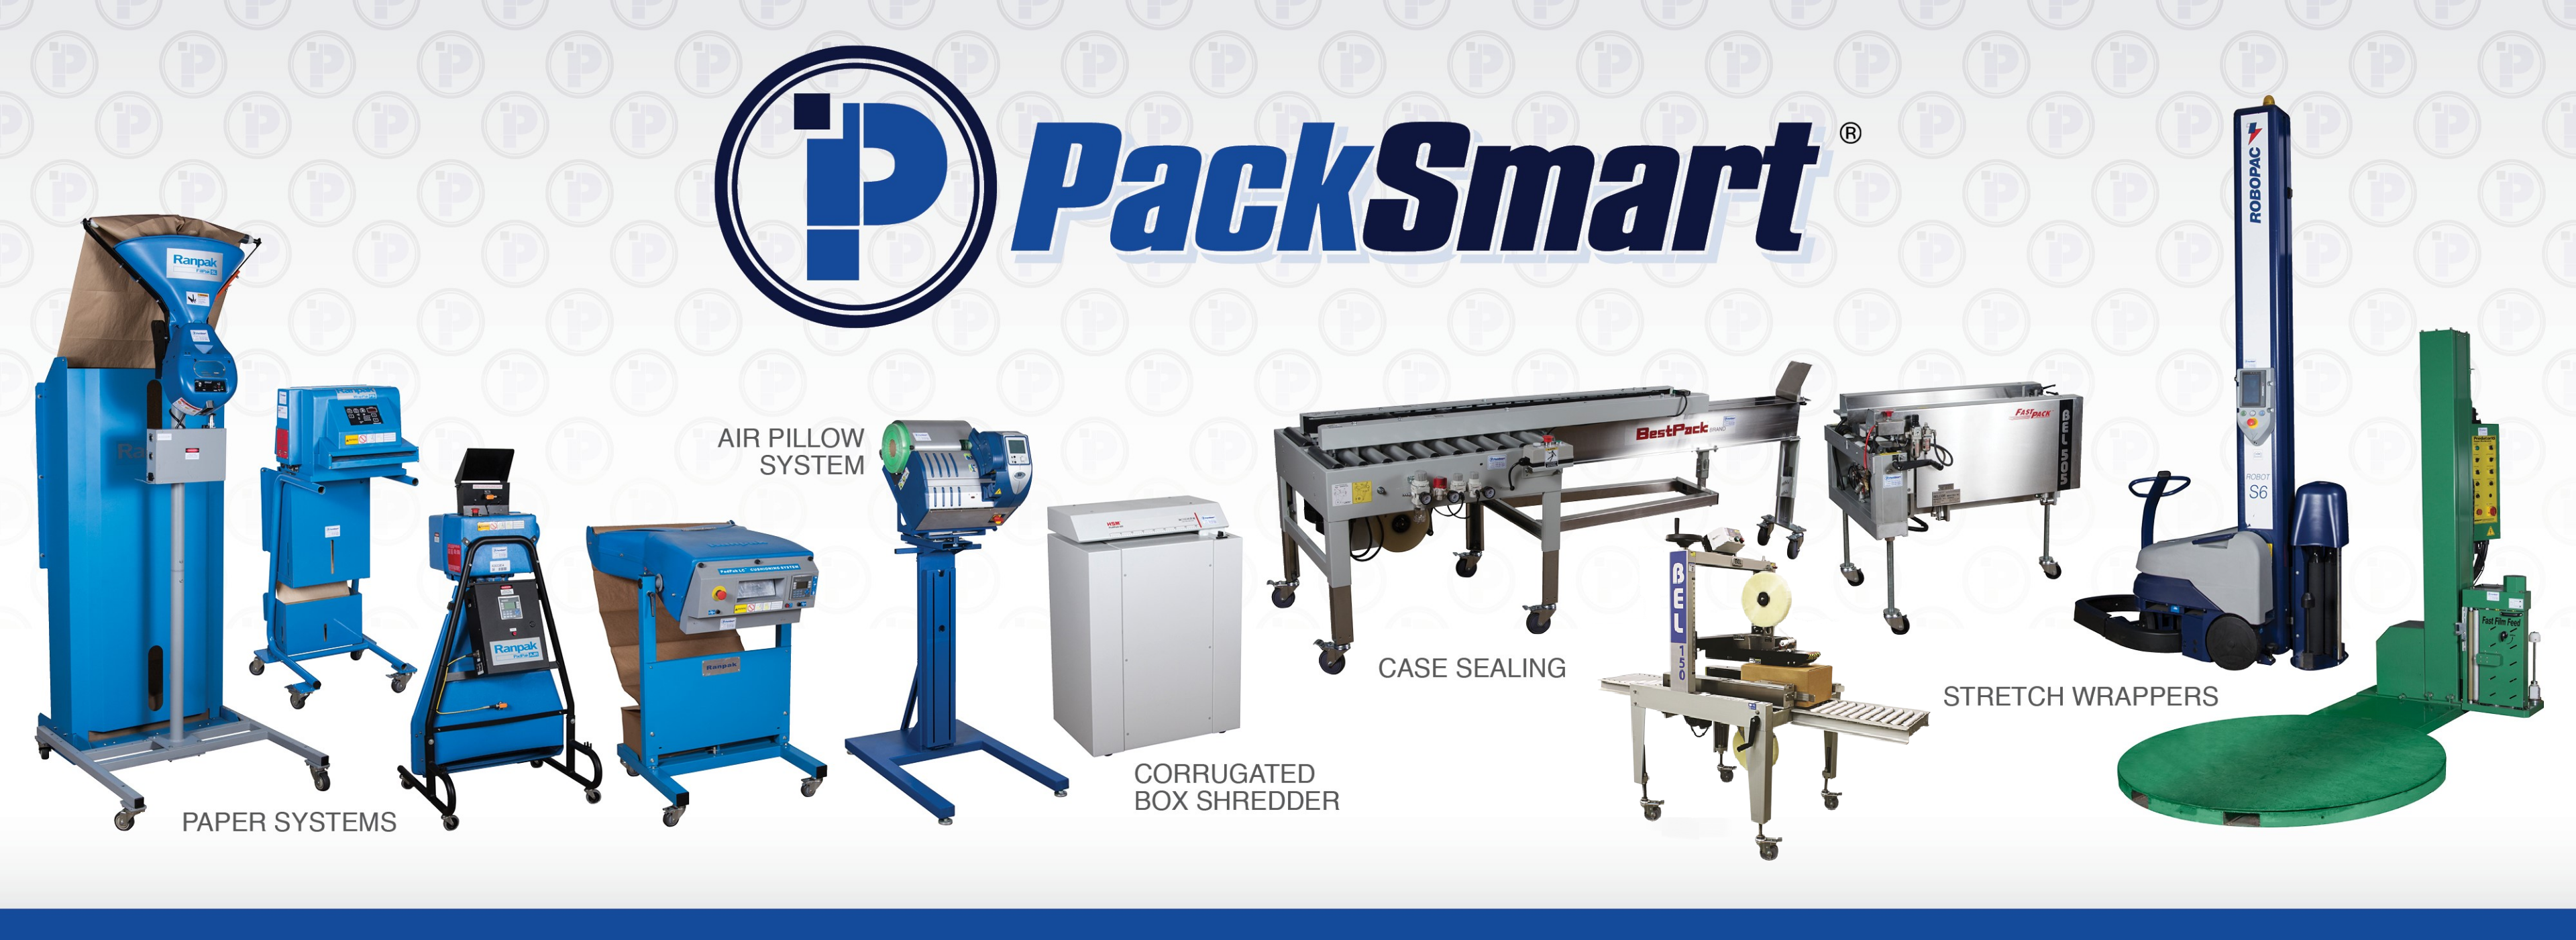 PackSmart   Packaging Solutions - Supplies and Machinery